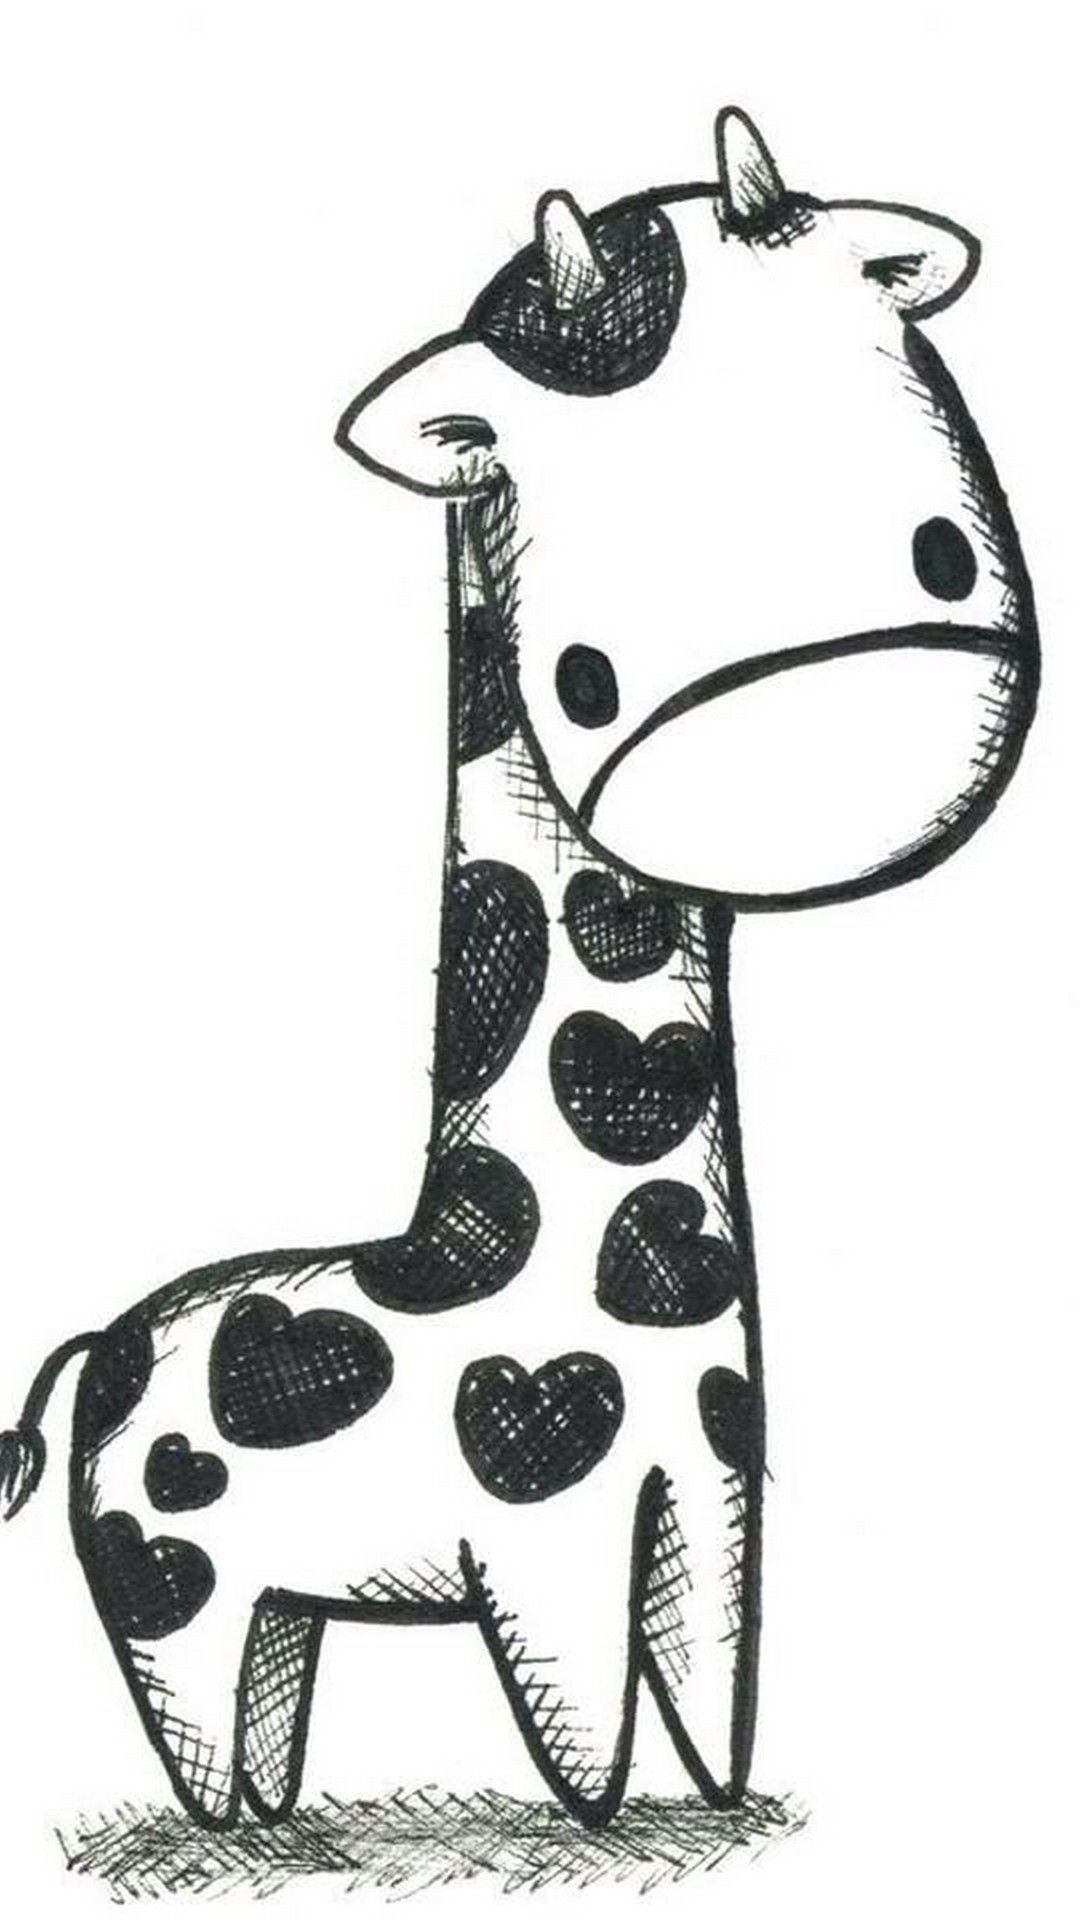 Giraffe wallpaper black and white cute giraffe drawing